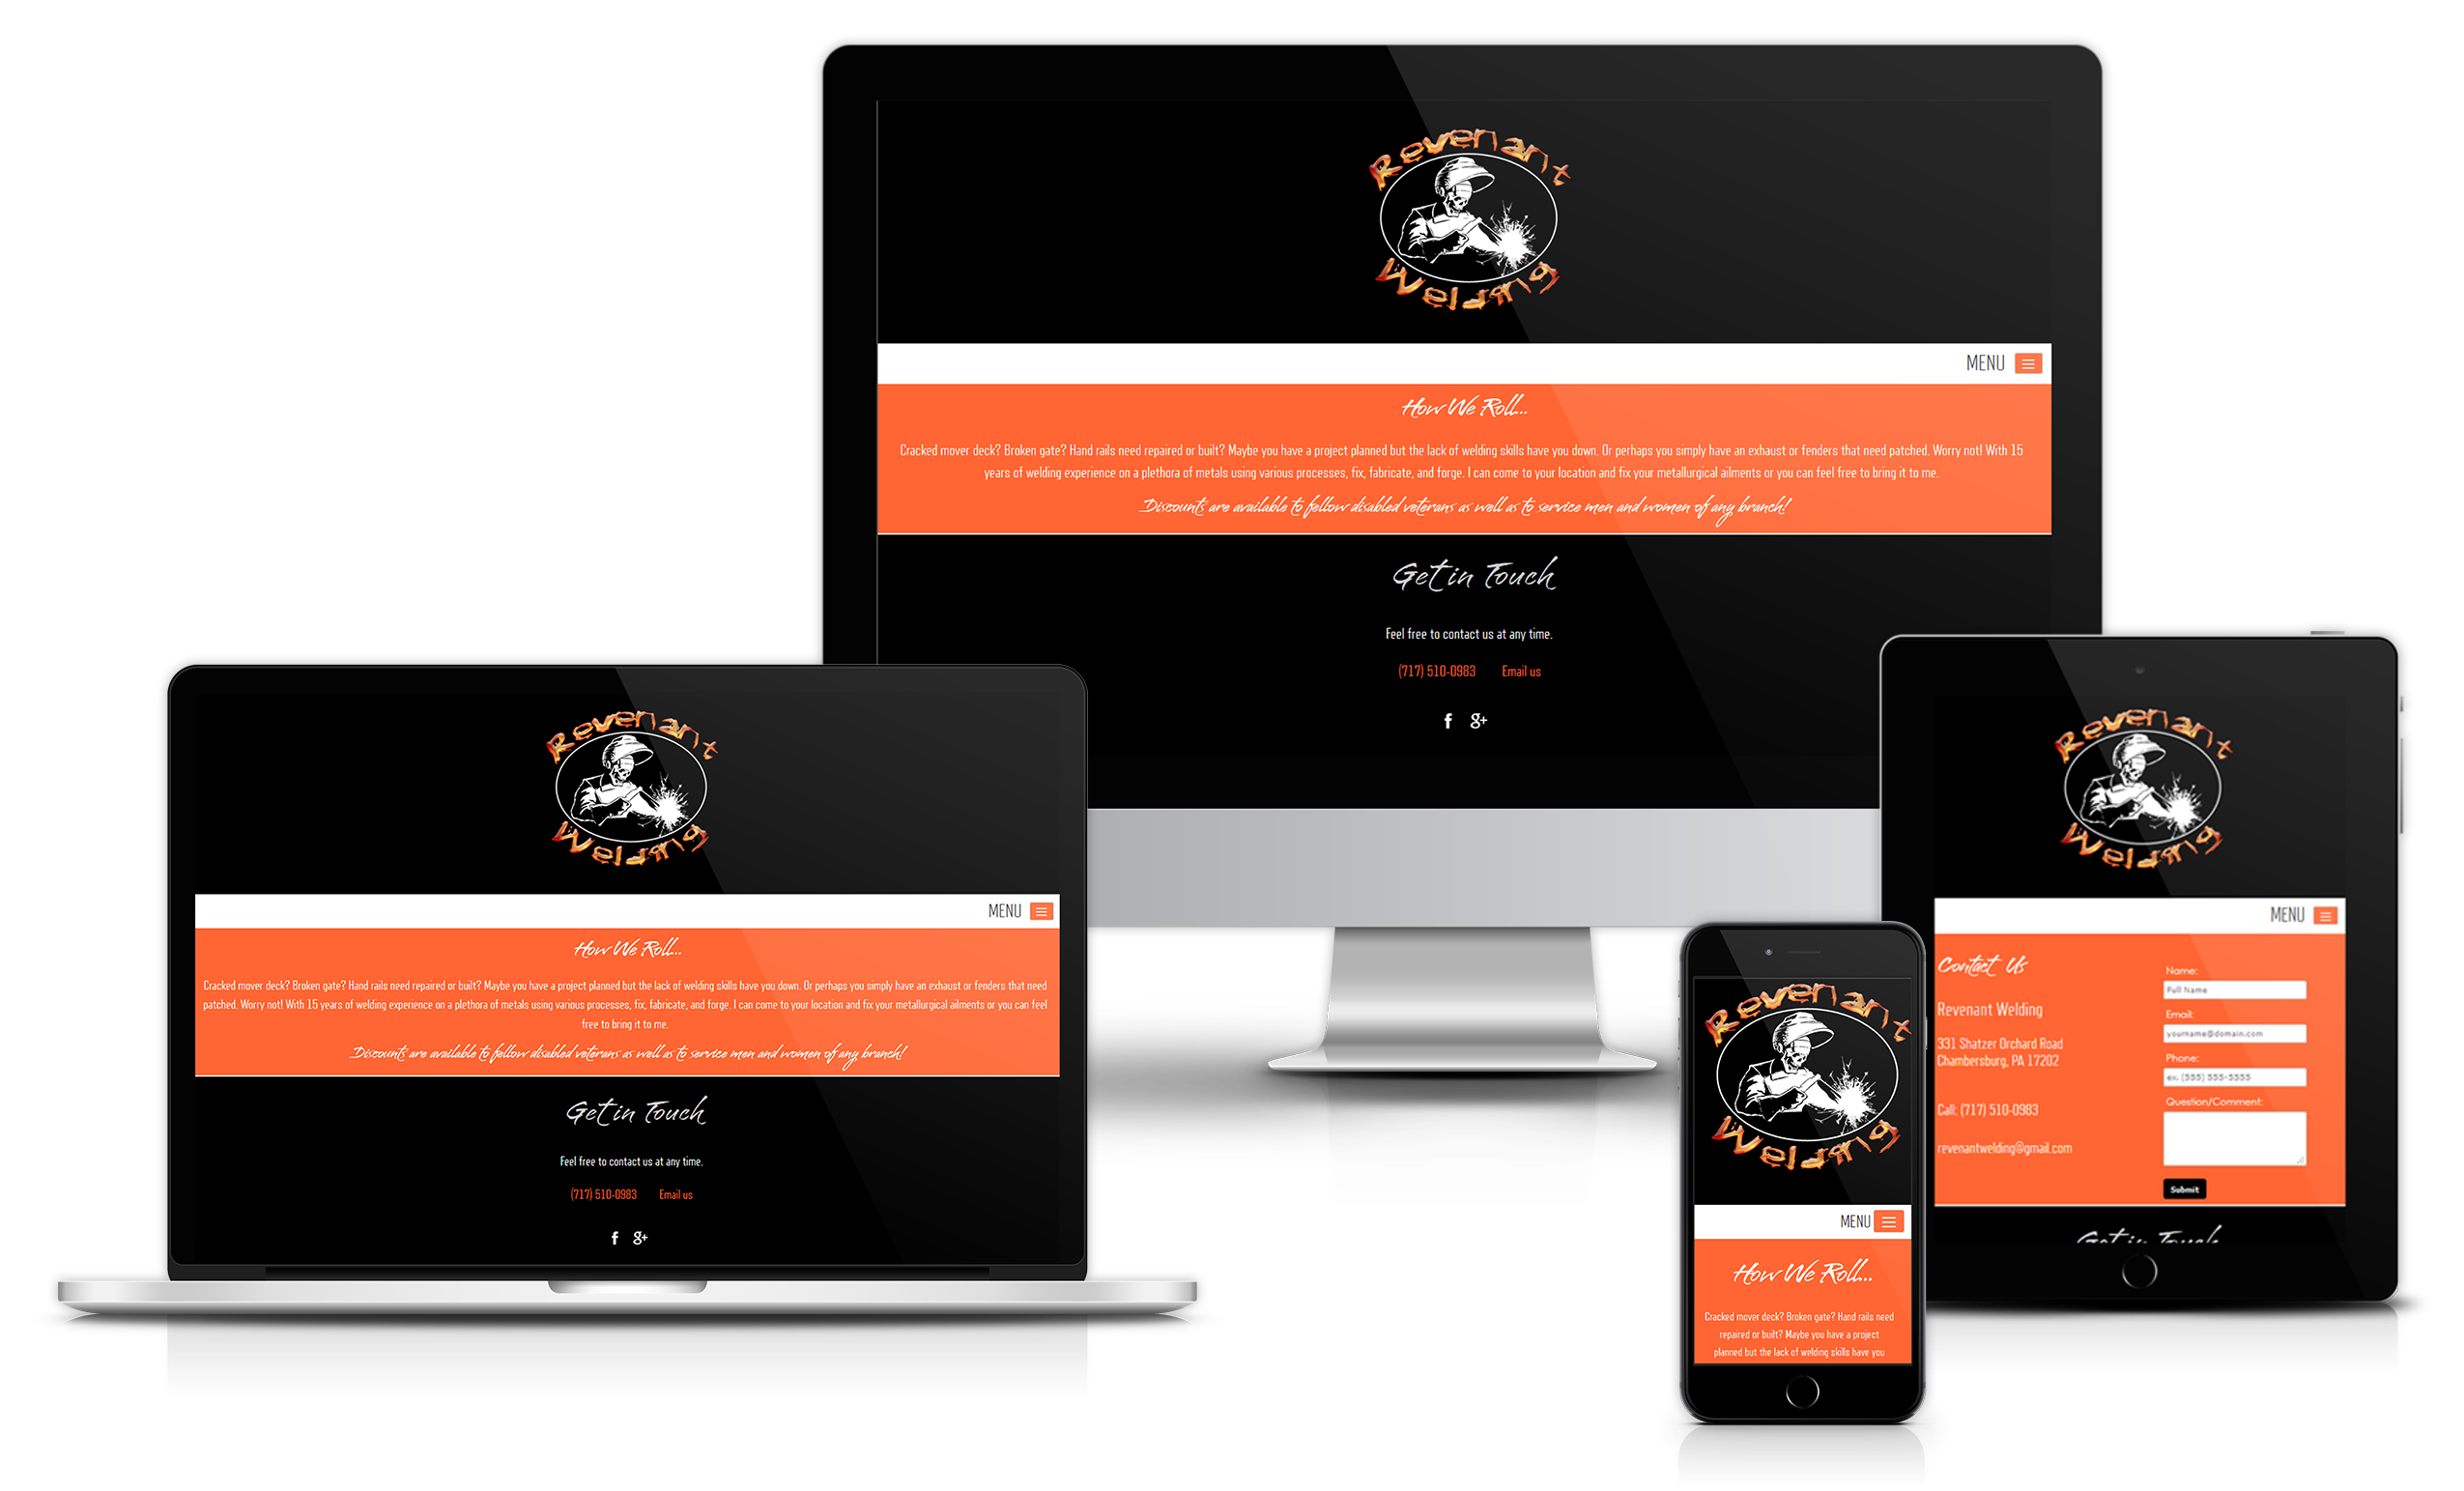 Revenant Welding website design, chambersburg pa welder - HeadAche Designs